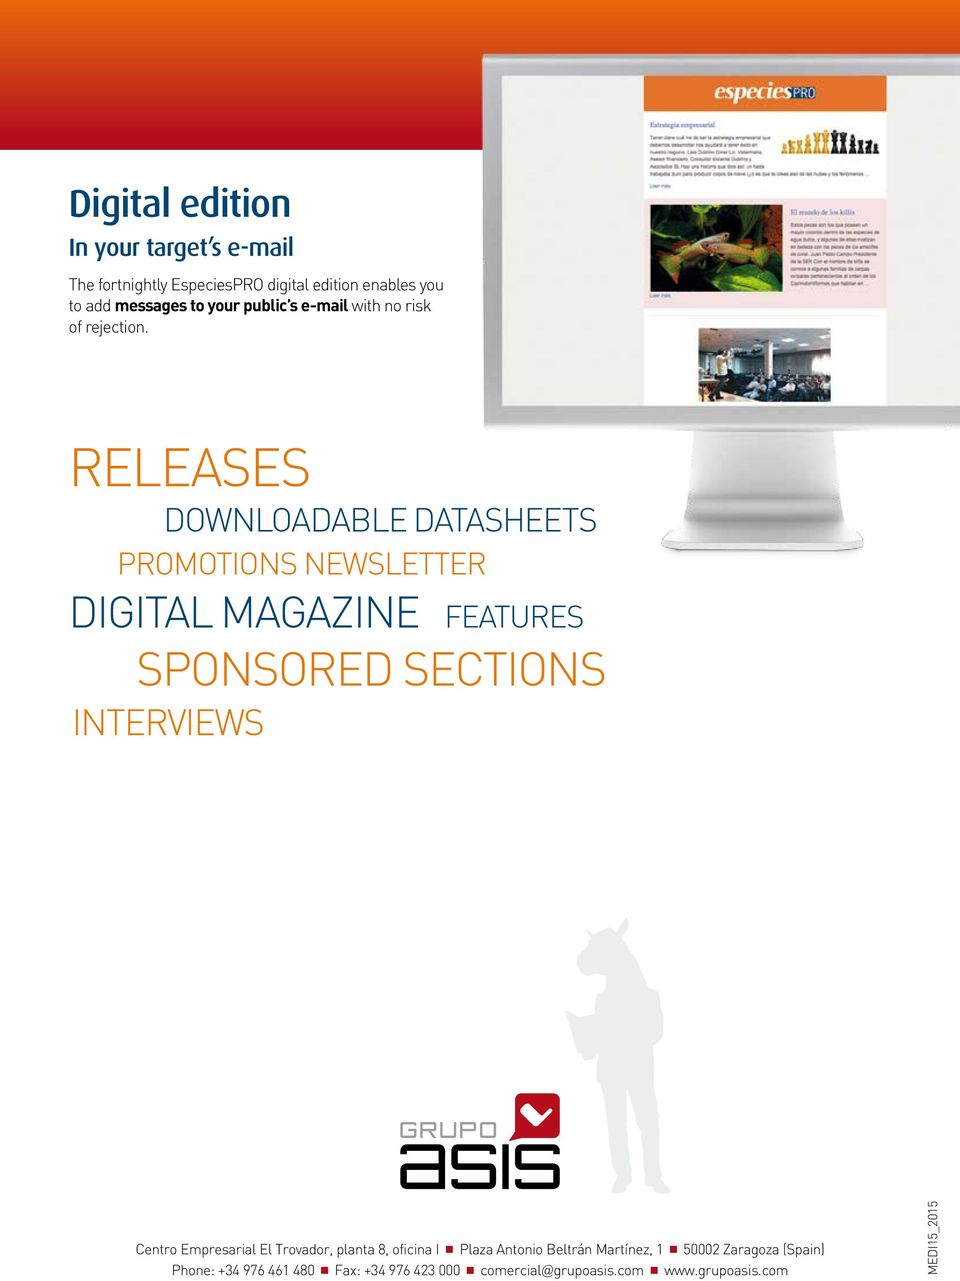 RELEASES DOWNLOADABLE DATASHEETS PROMOTIONS NEWSLETTER DIGITAL MAGAZINE FEATURES SPONSORED SECTIONS INTERVIEWS Centro